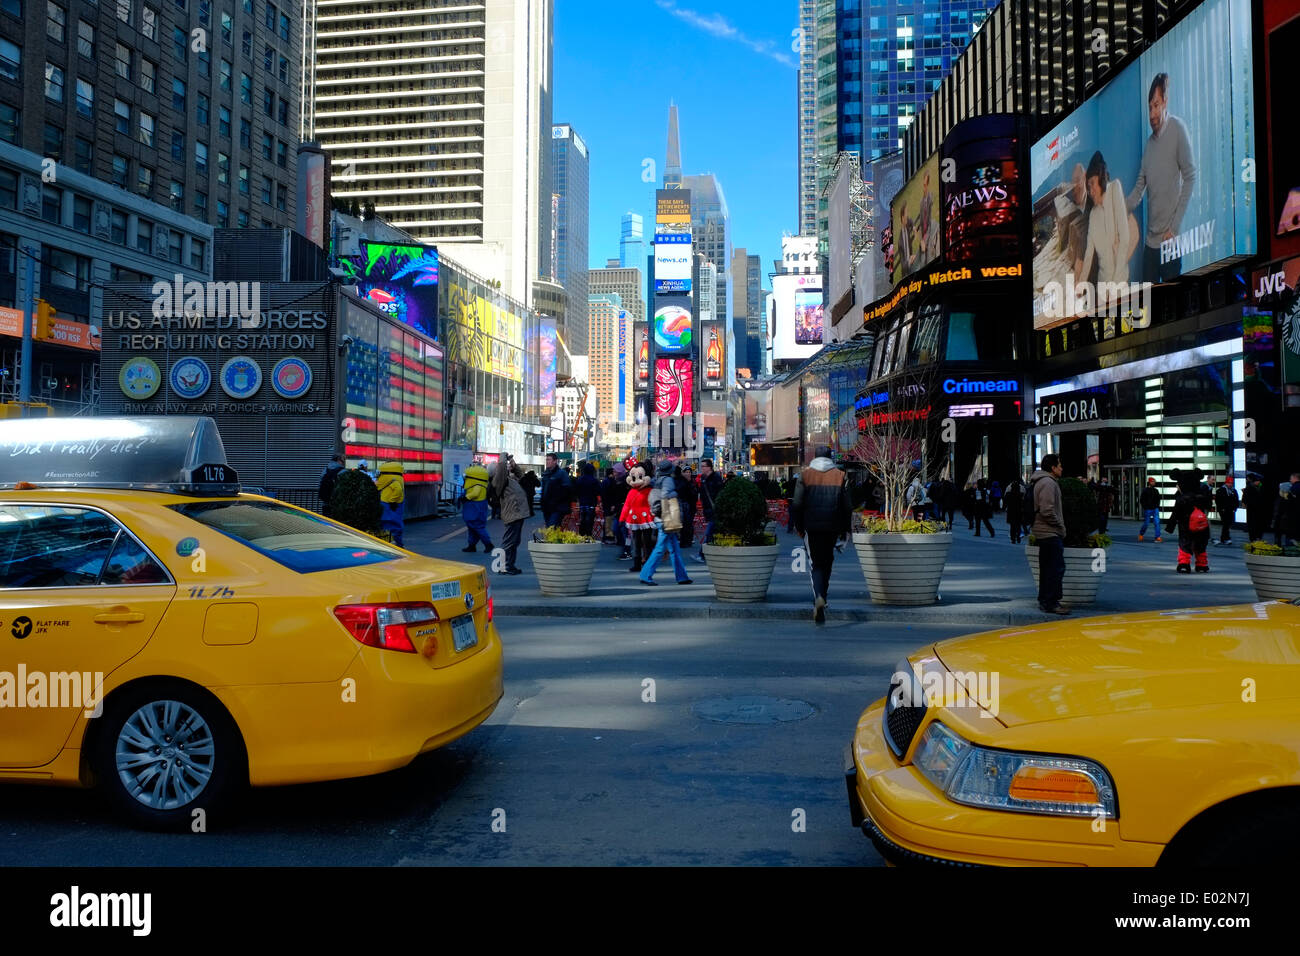 Taxi, Cabs in Times Square, New York, USA - Stock Image